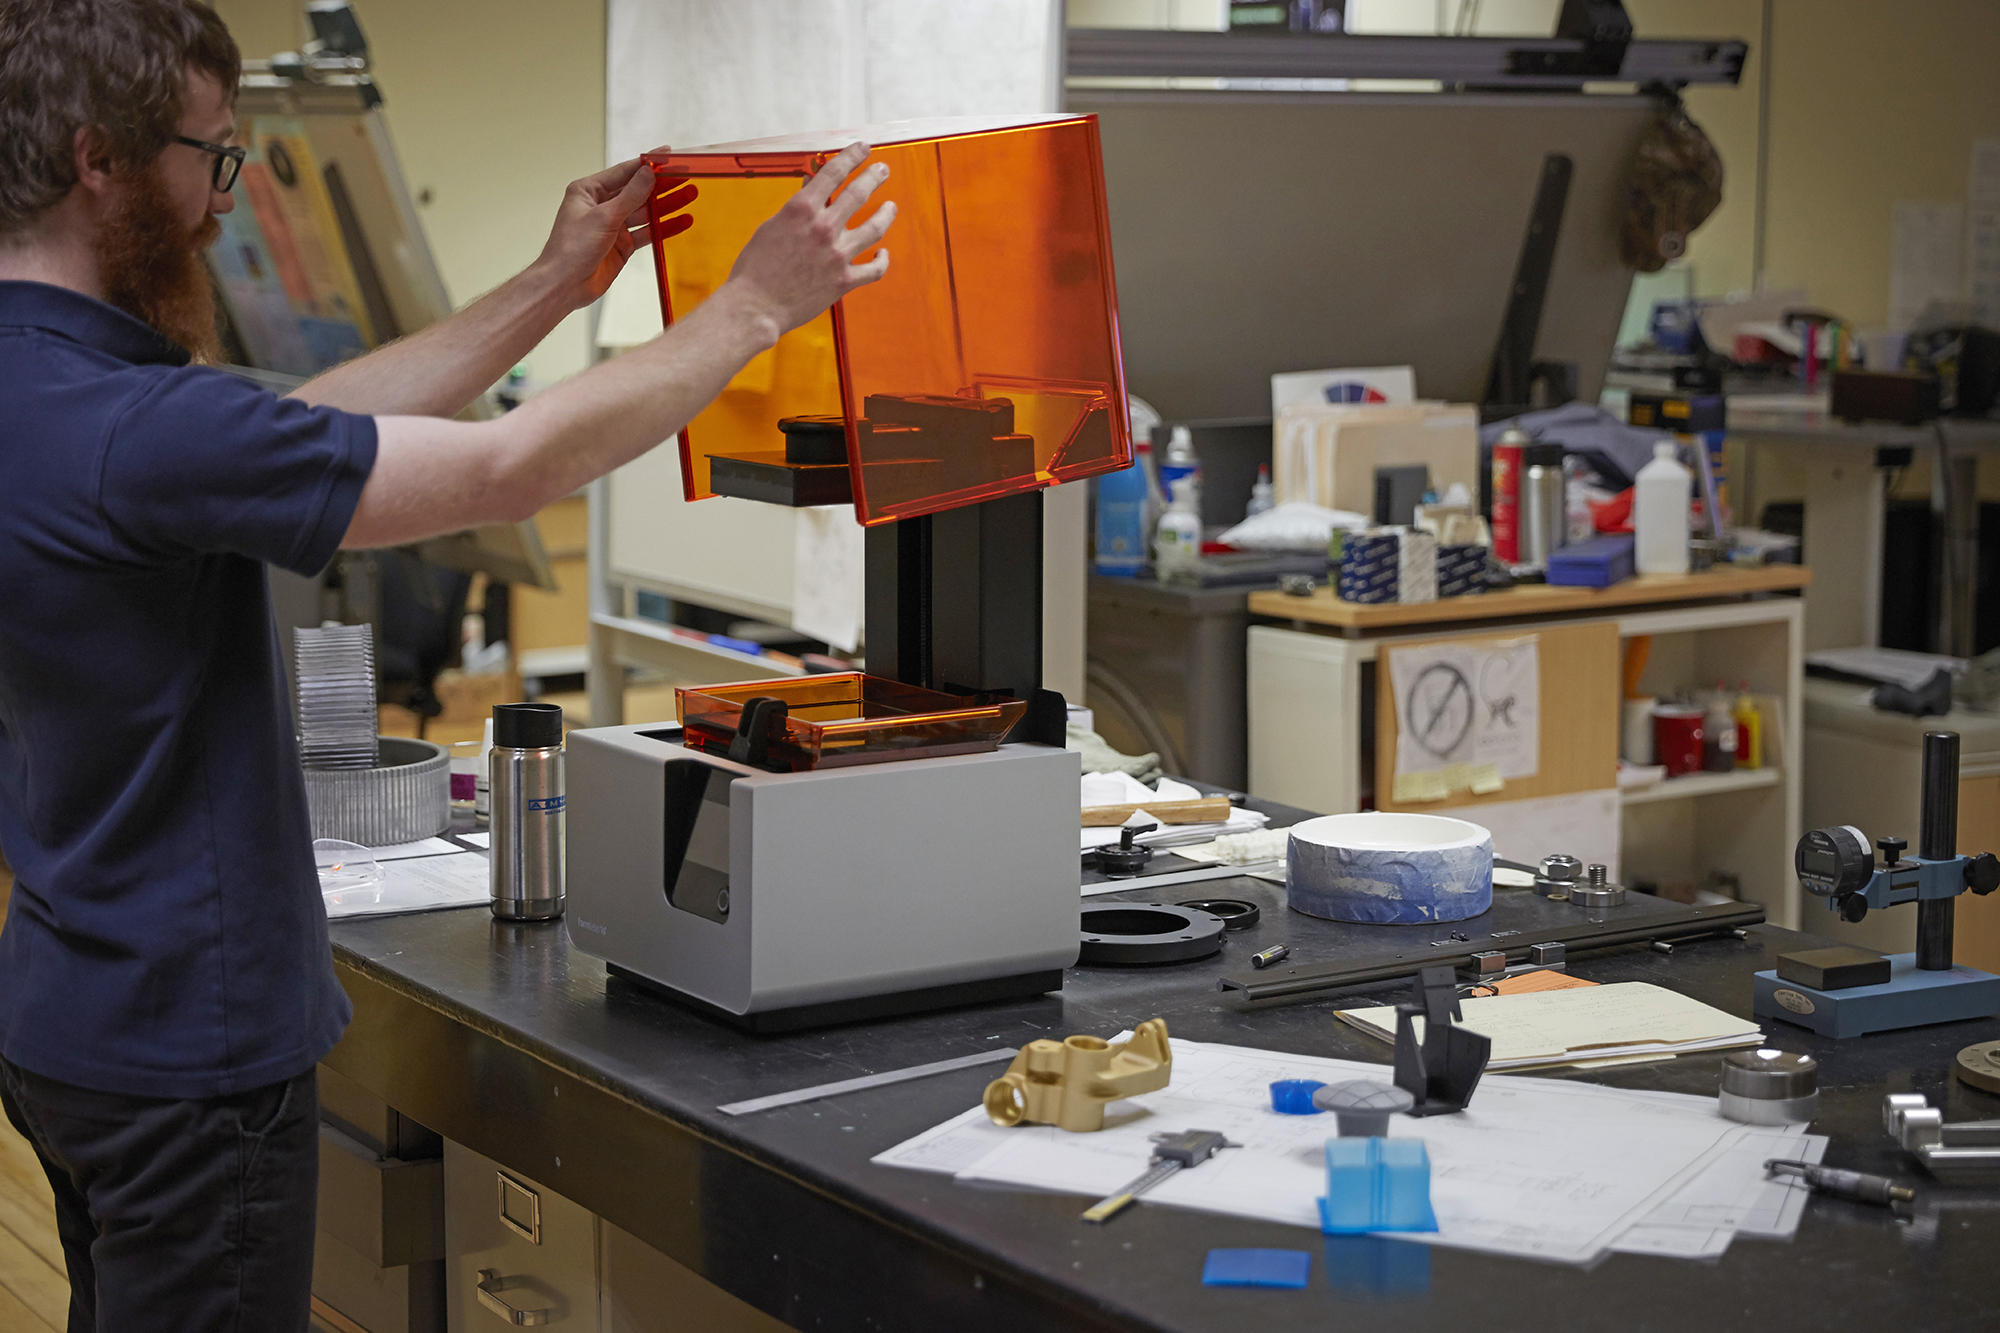 A production engineer at A&M Tool uses Formlabs Form 2 desktop stereolithography 3D printer and engineering resins.